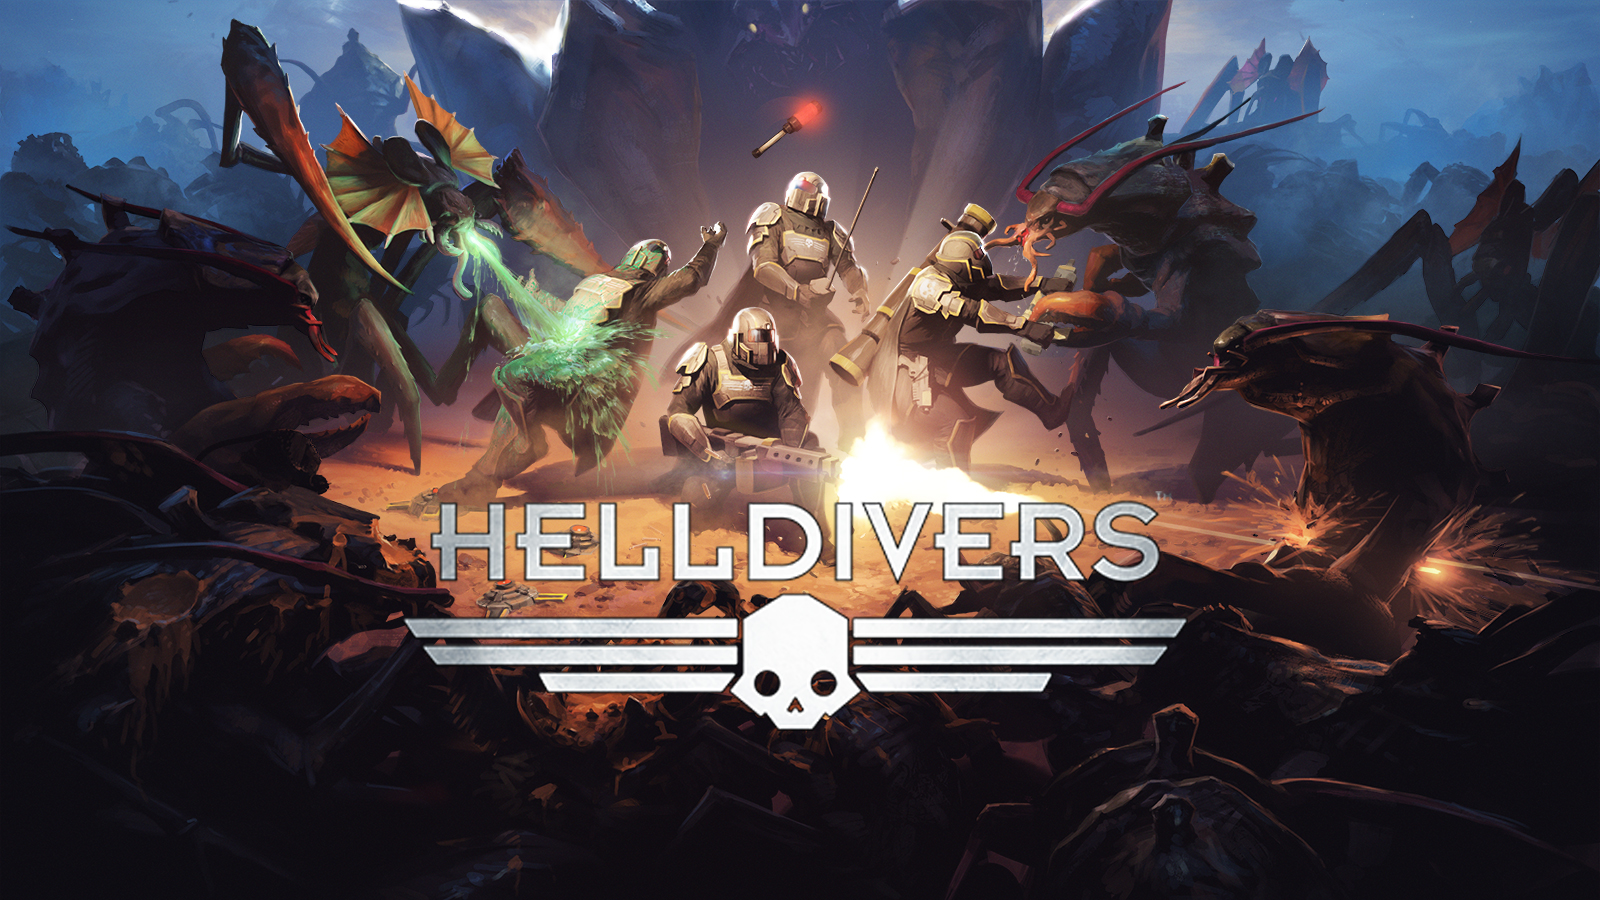 Helldivers telecharger gratuit de PC et Torrent